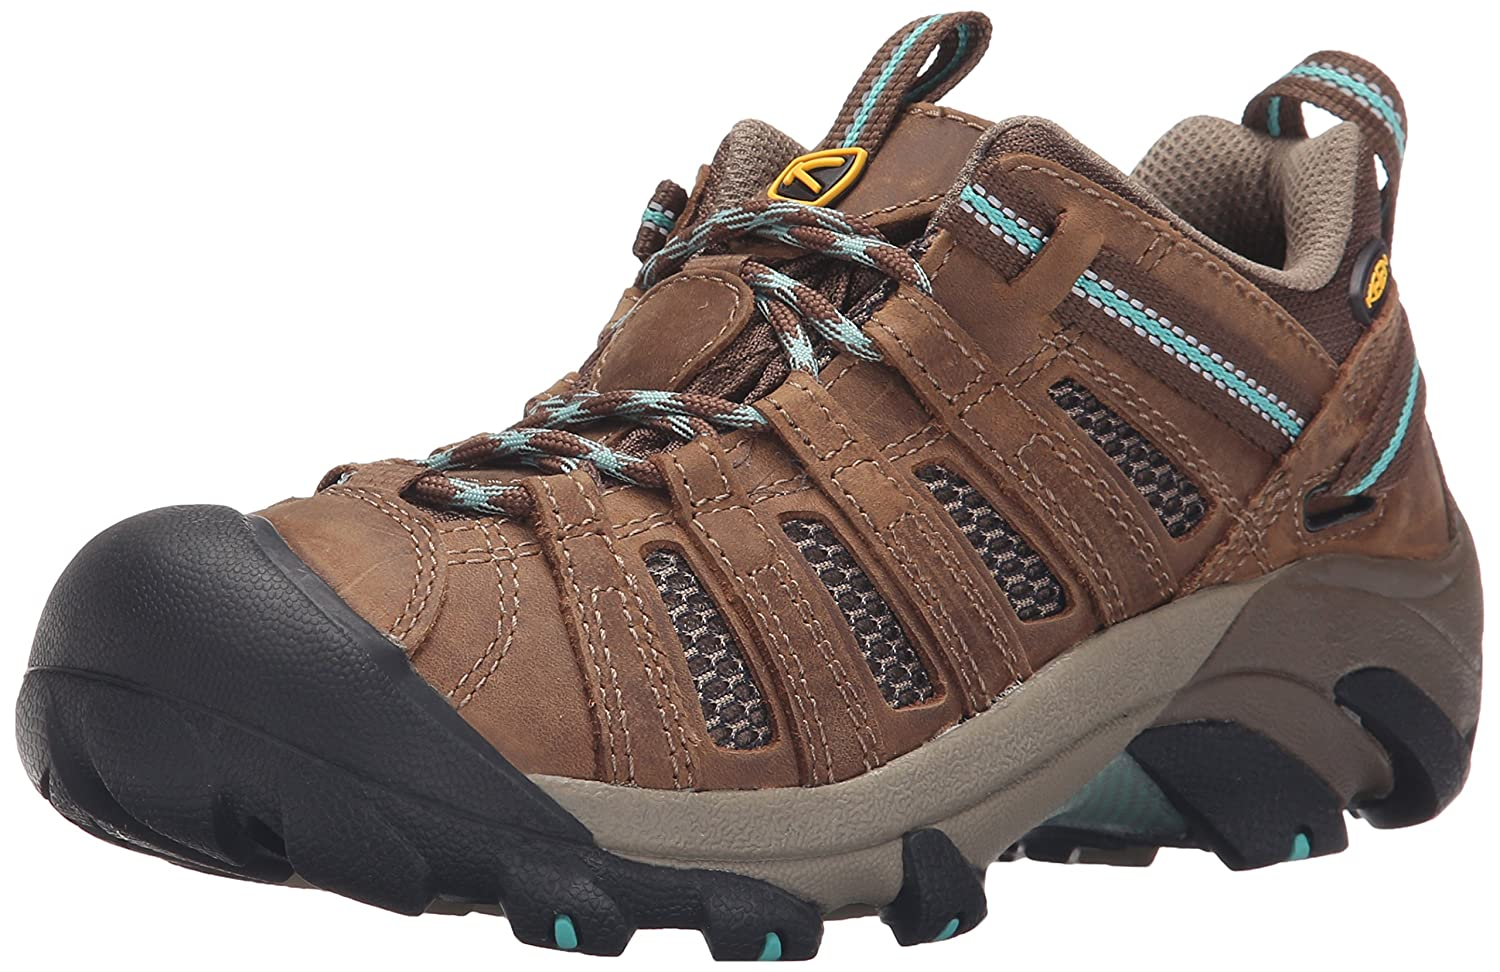 Dark Earth Lagoon KEEN Women's Voyageur Running shoes